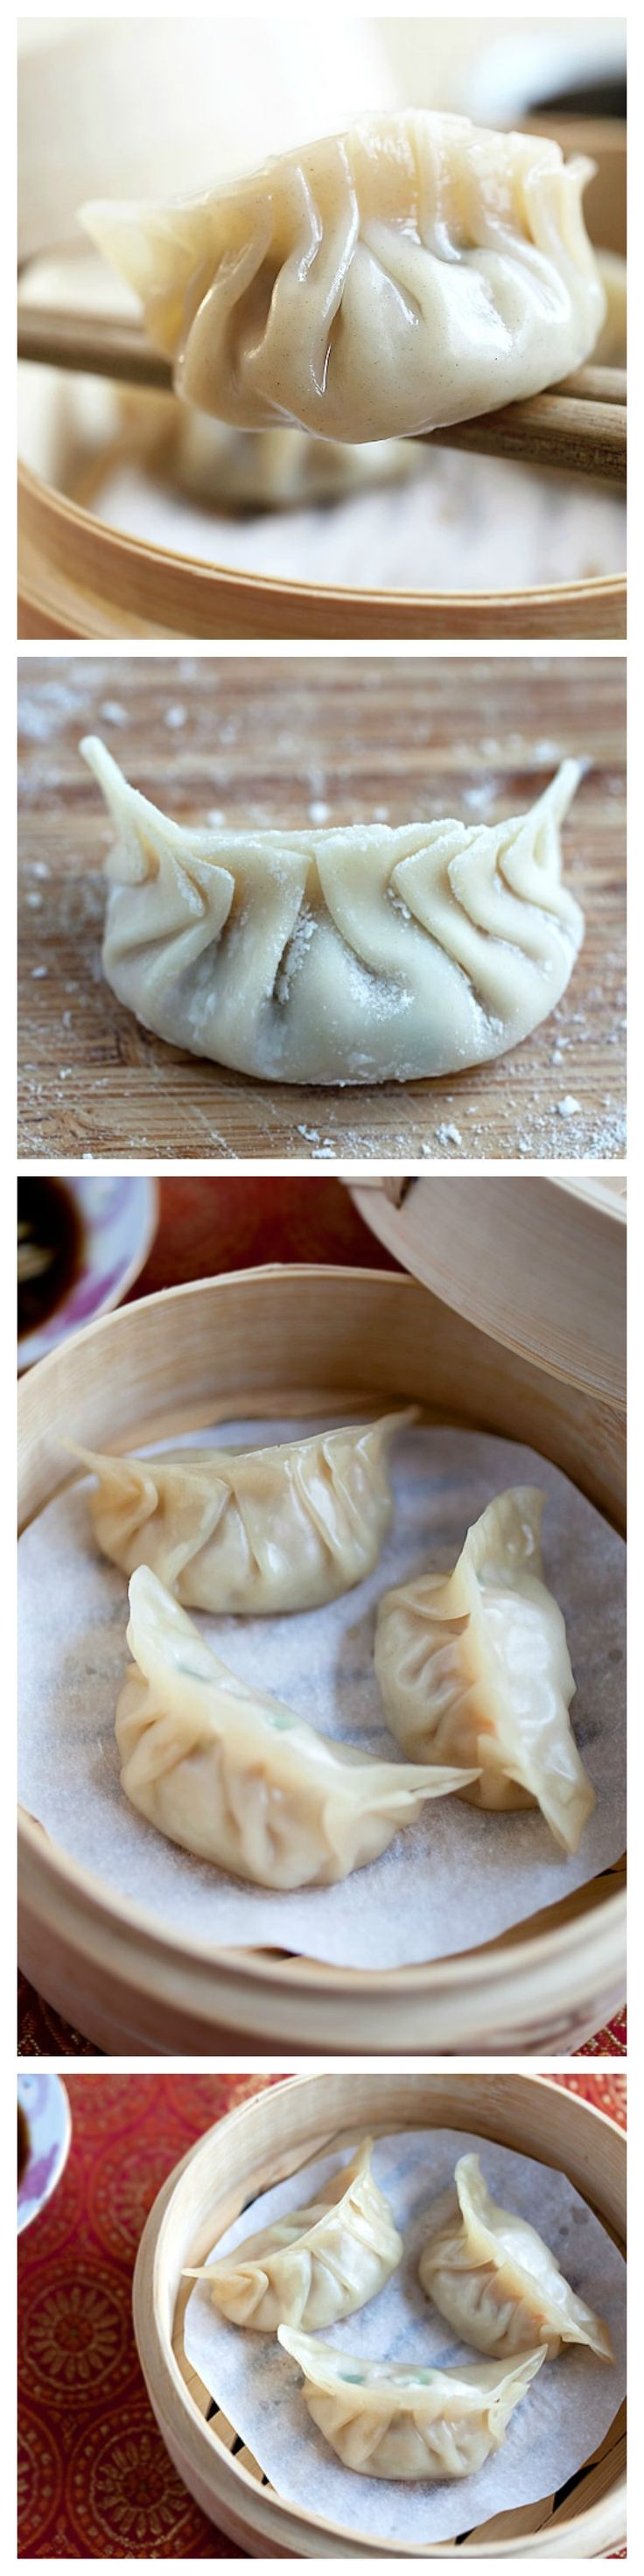 Steamed dumplings Recipe. The freshest, most delicious, and easiest dumplings ever. Much better than the frozen aisle dumplings | http://rasamalaysia.com